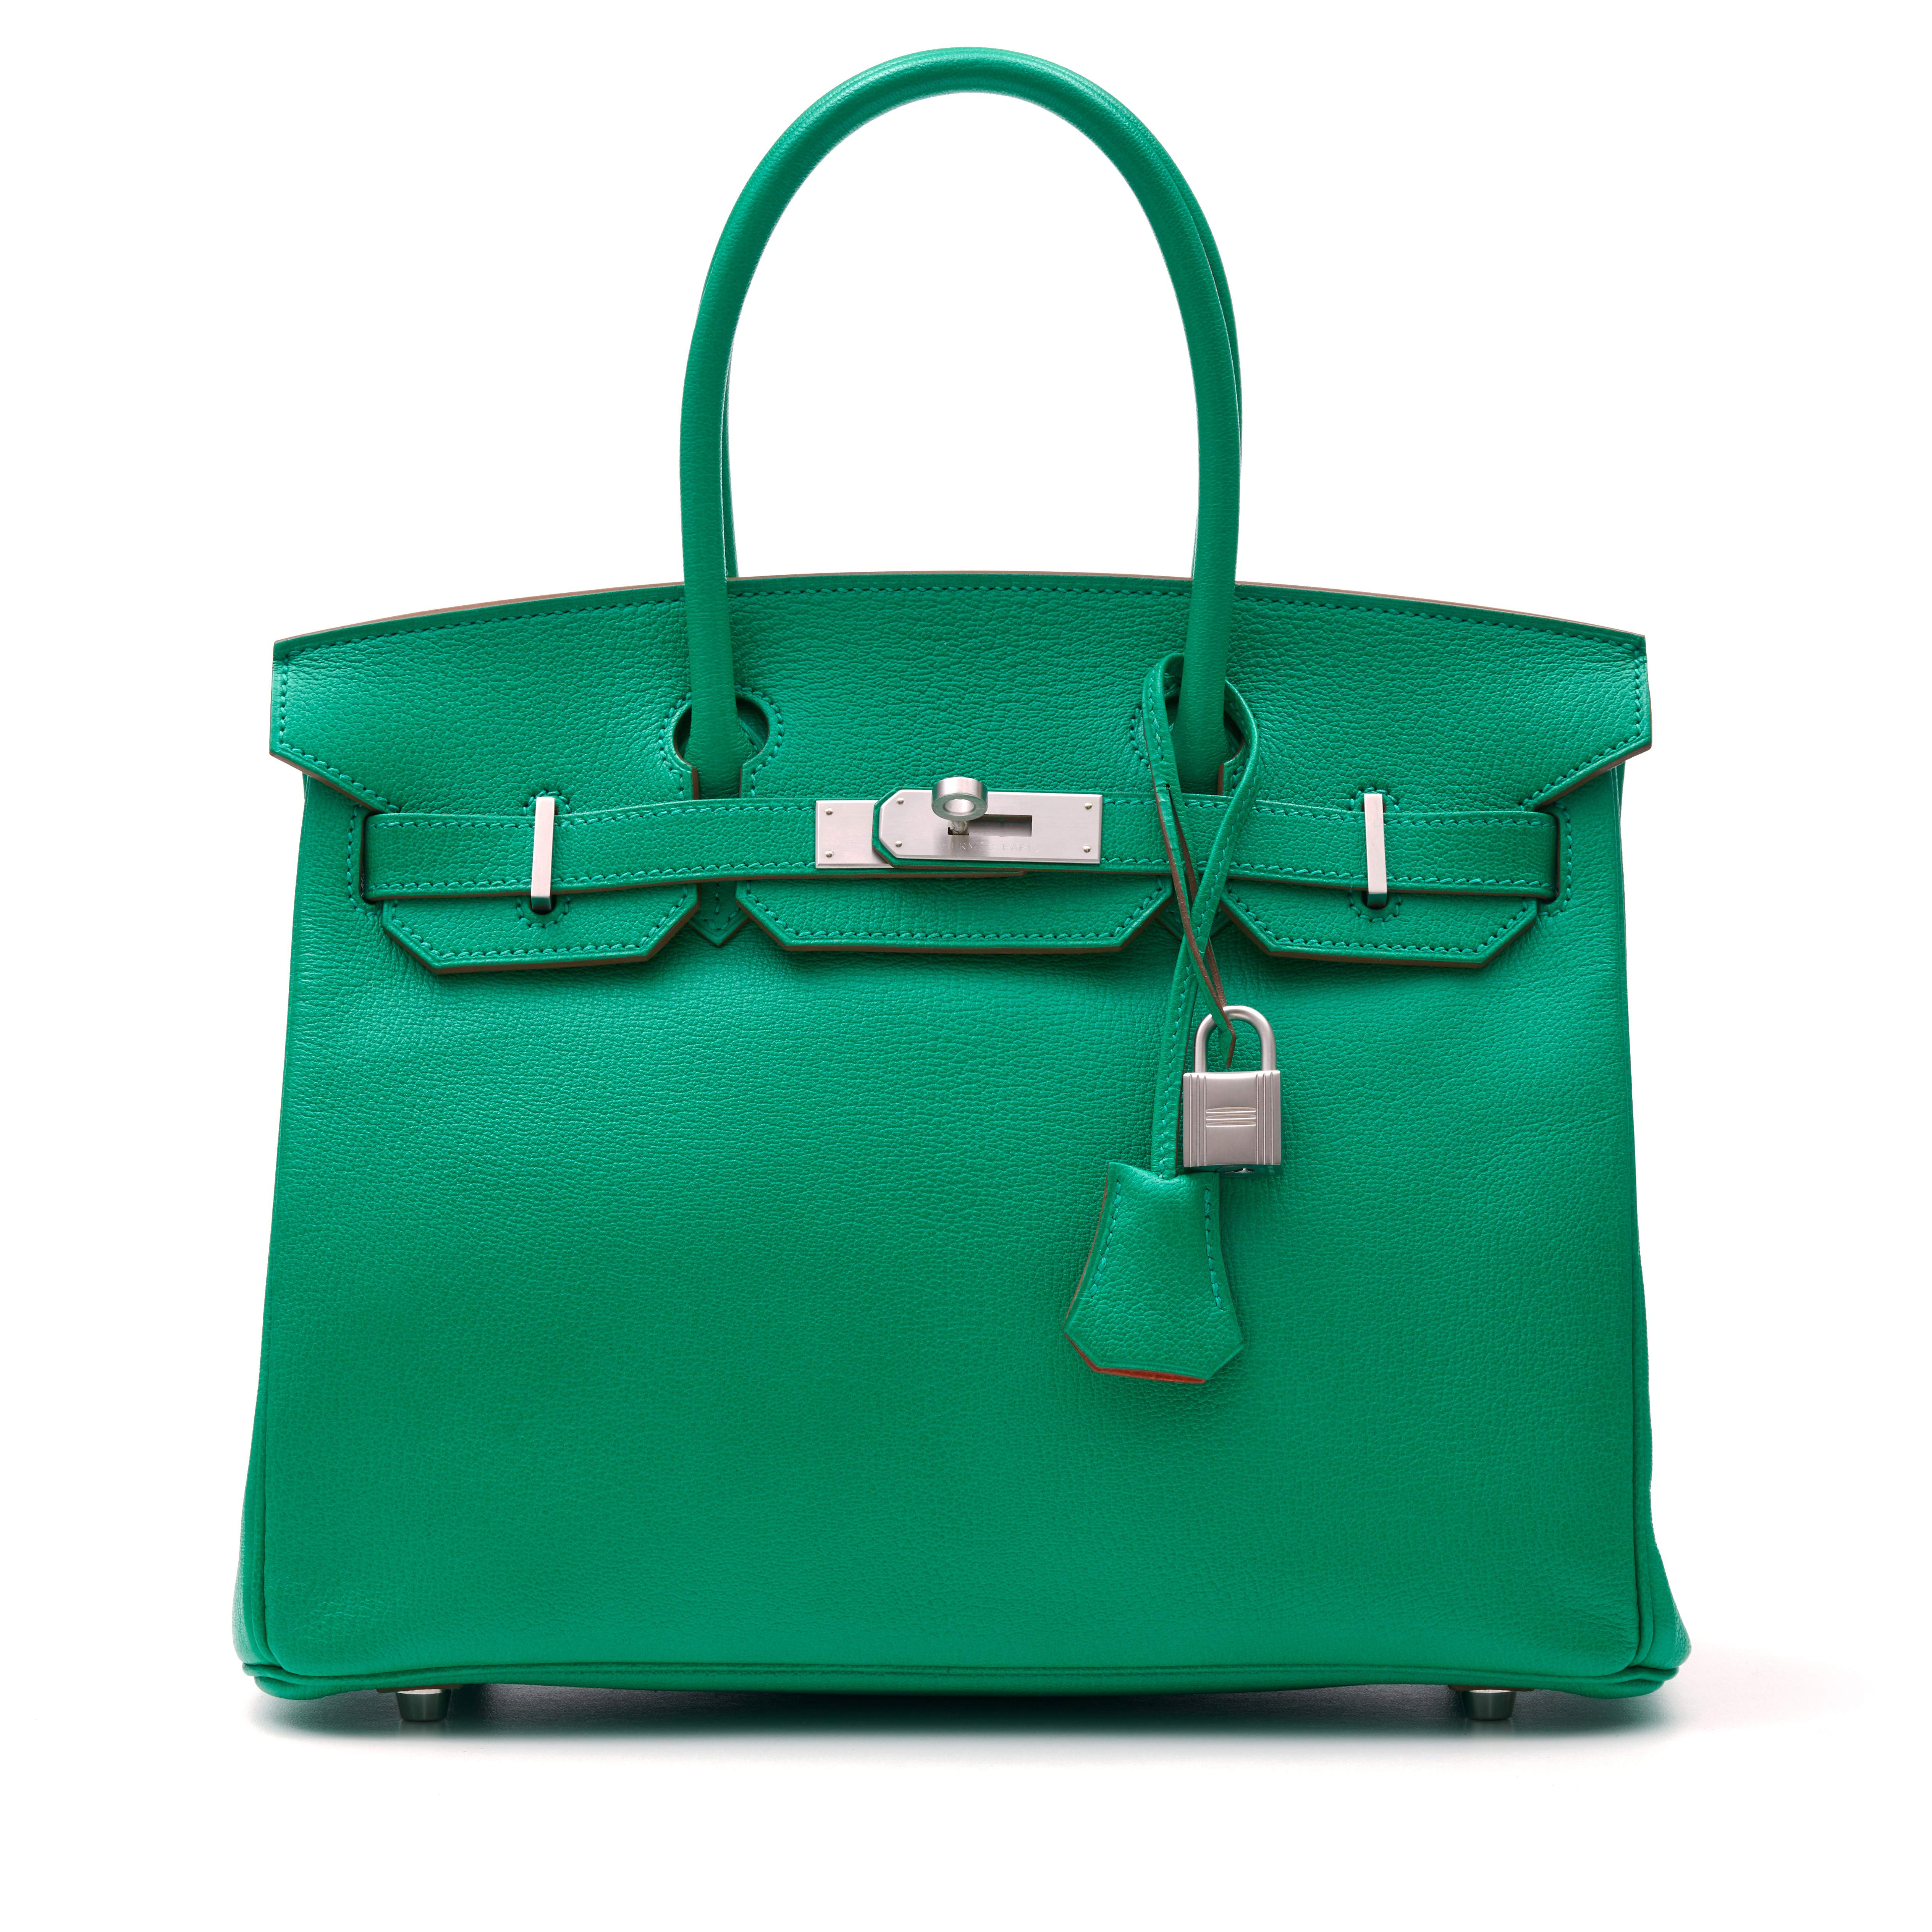 View full screen - View 1 of Lot 346. Menthe Birkin 30cm in Chèvre Mysore Leather with Palladium Hardware, 2013.